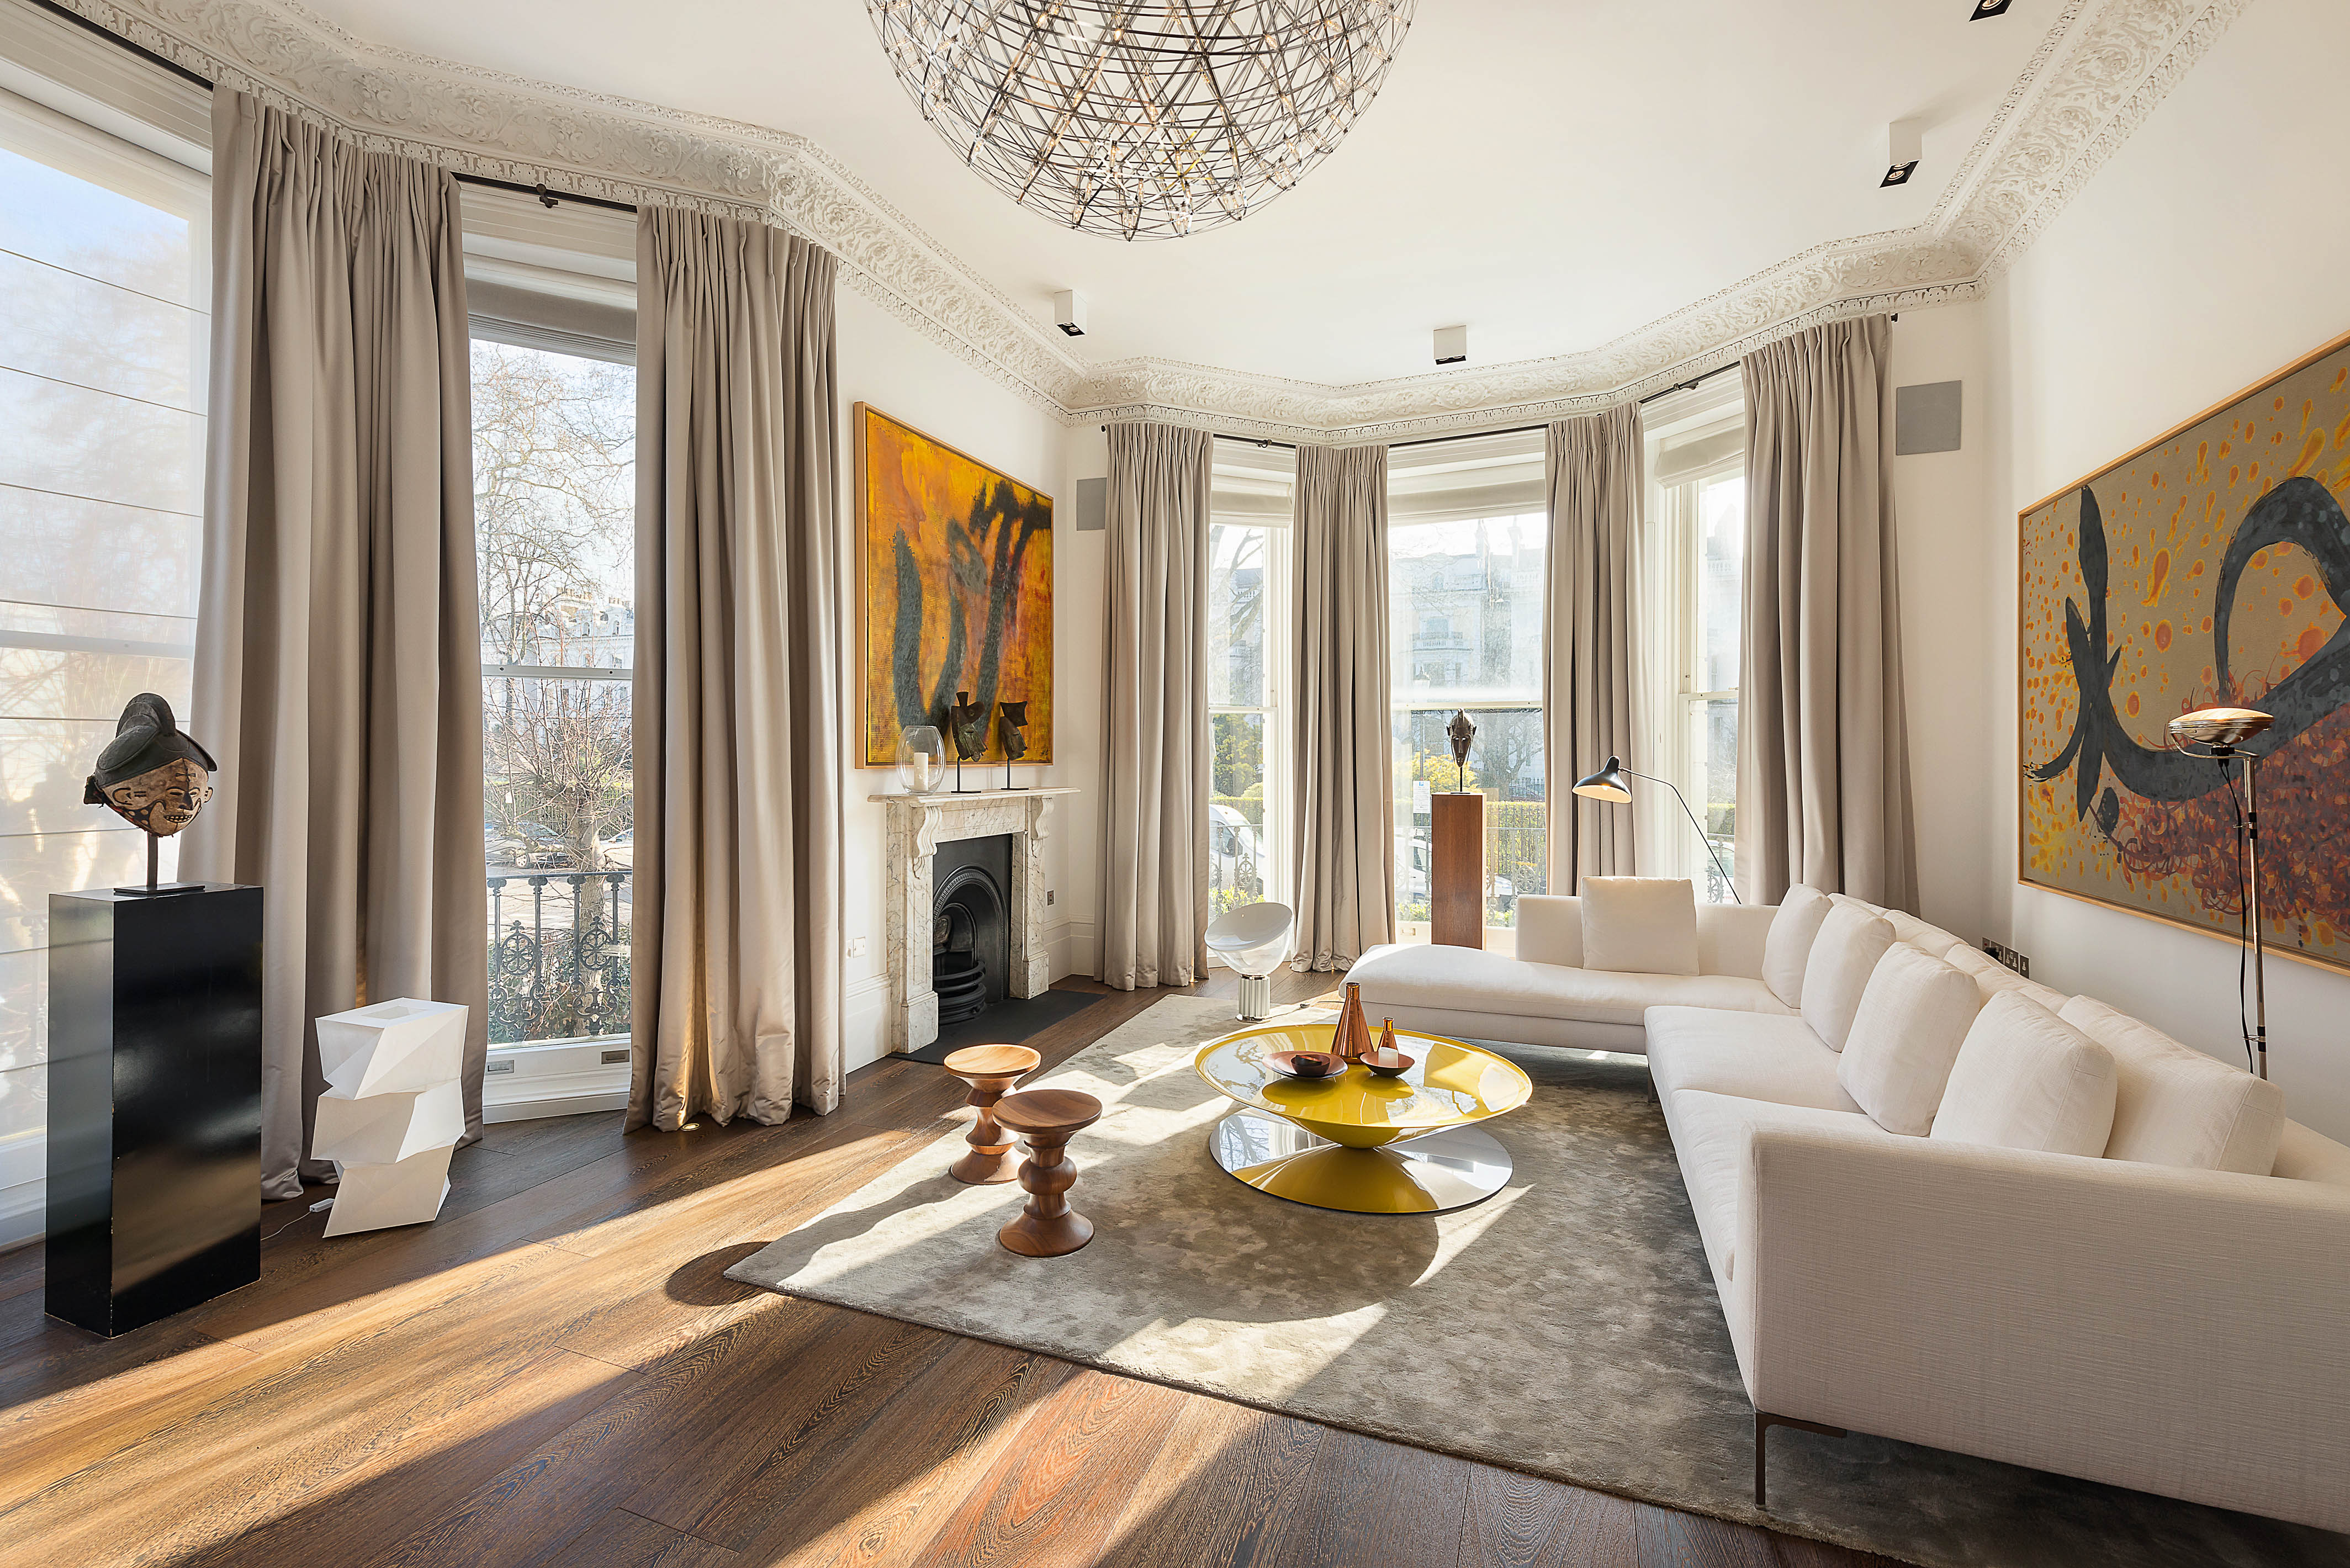 Although London's £2 million-plus sector recorded a 4% annual increase in the number of property sales, volumes still are lagging the rapid pace set in the earlier part of the decade.